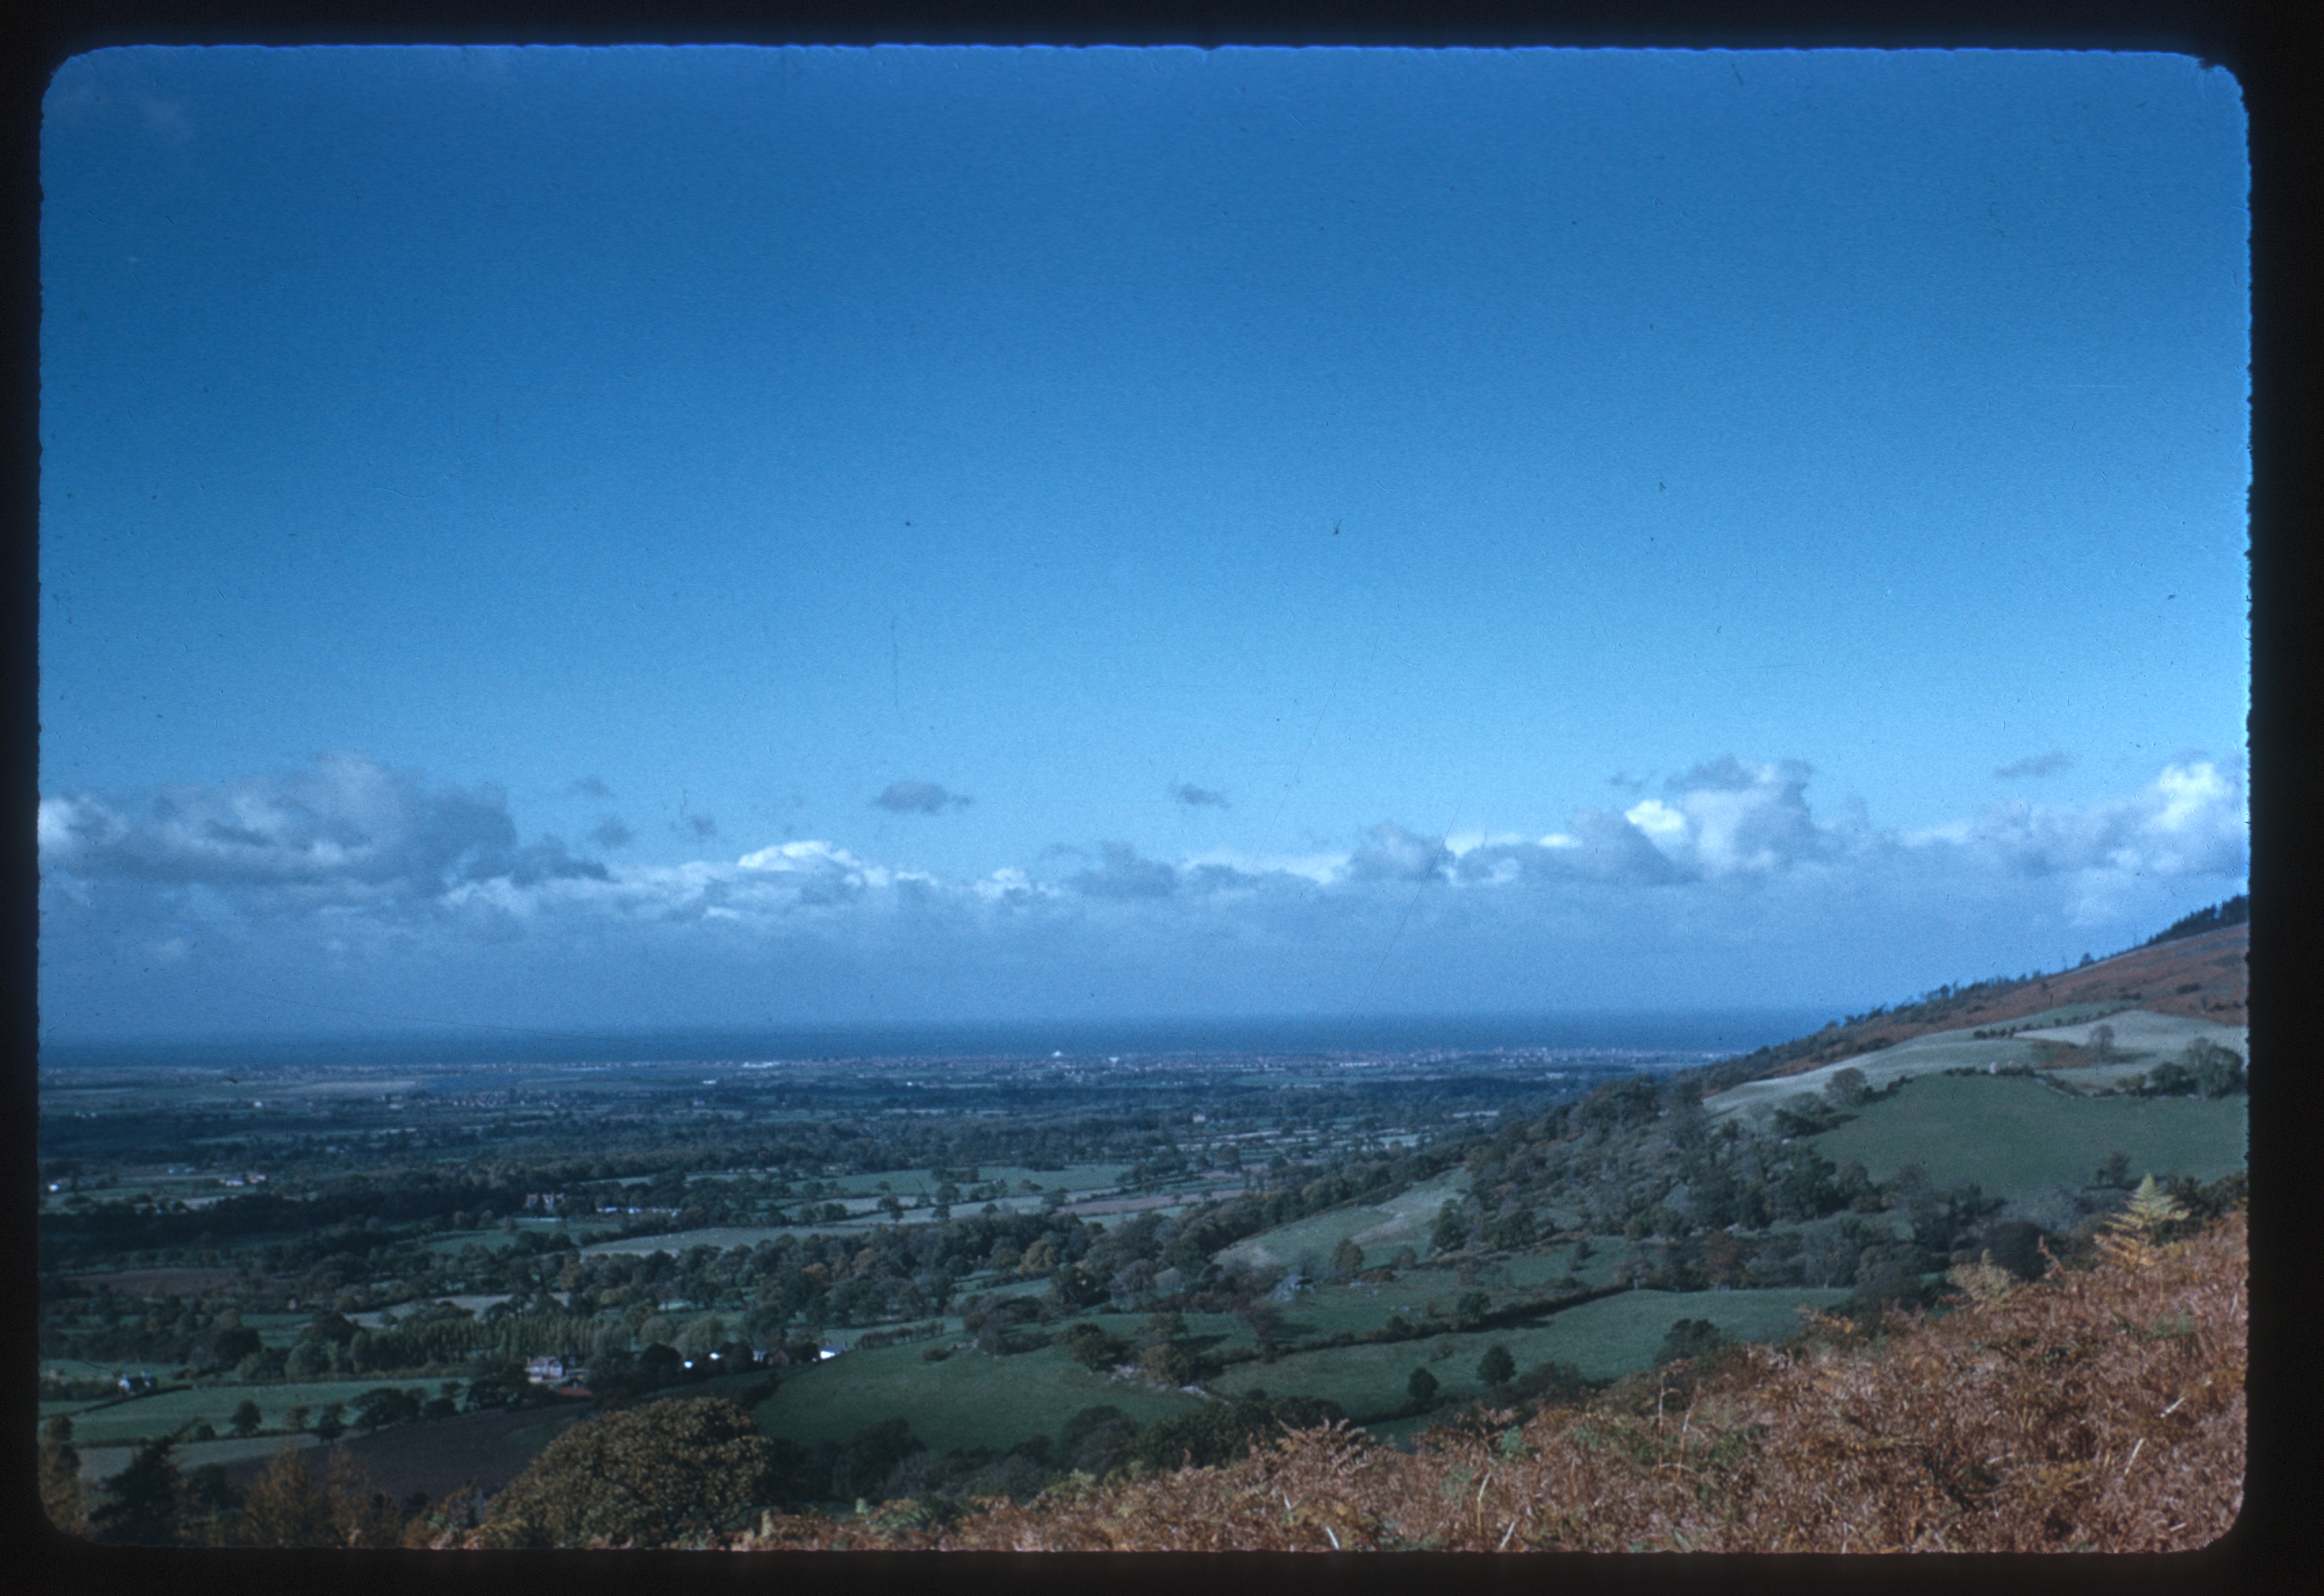 Photograph: Irish Sea, from St. Beuno's